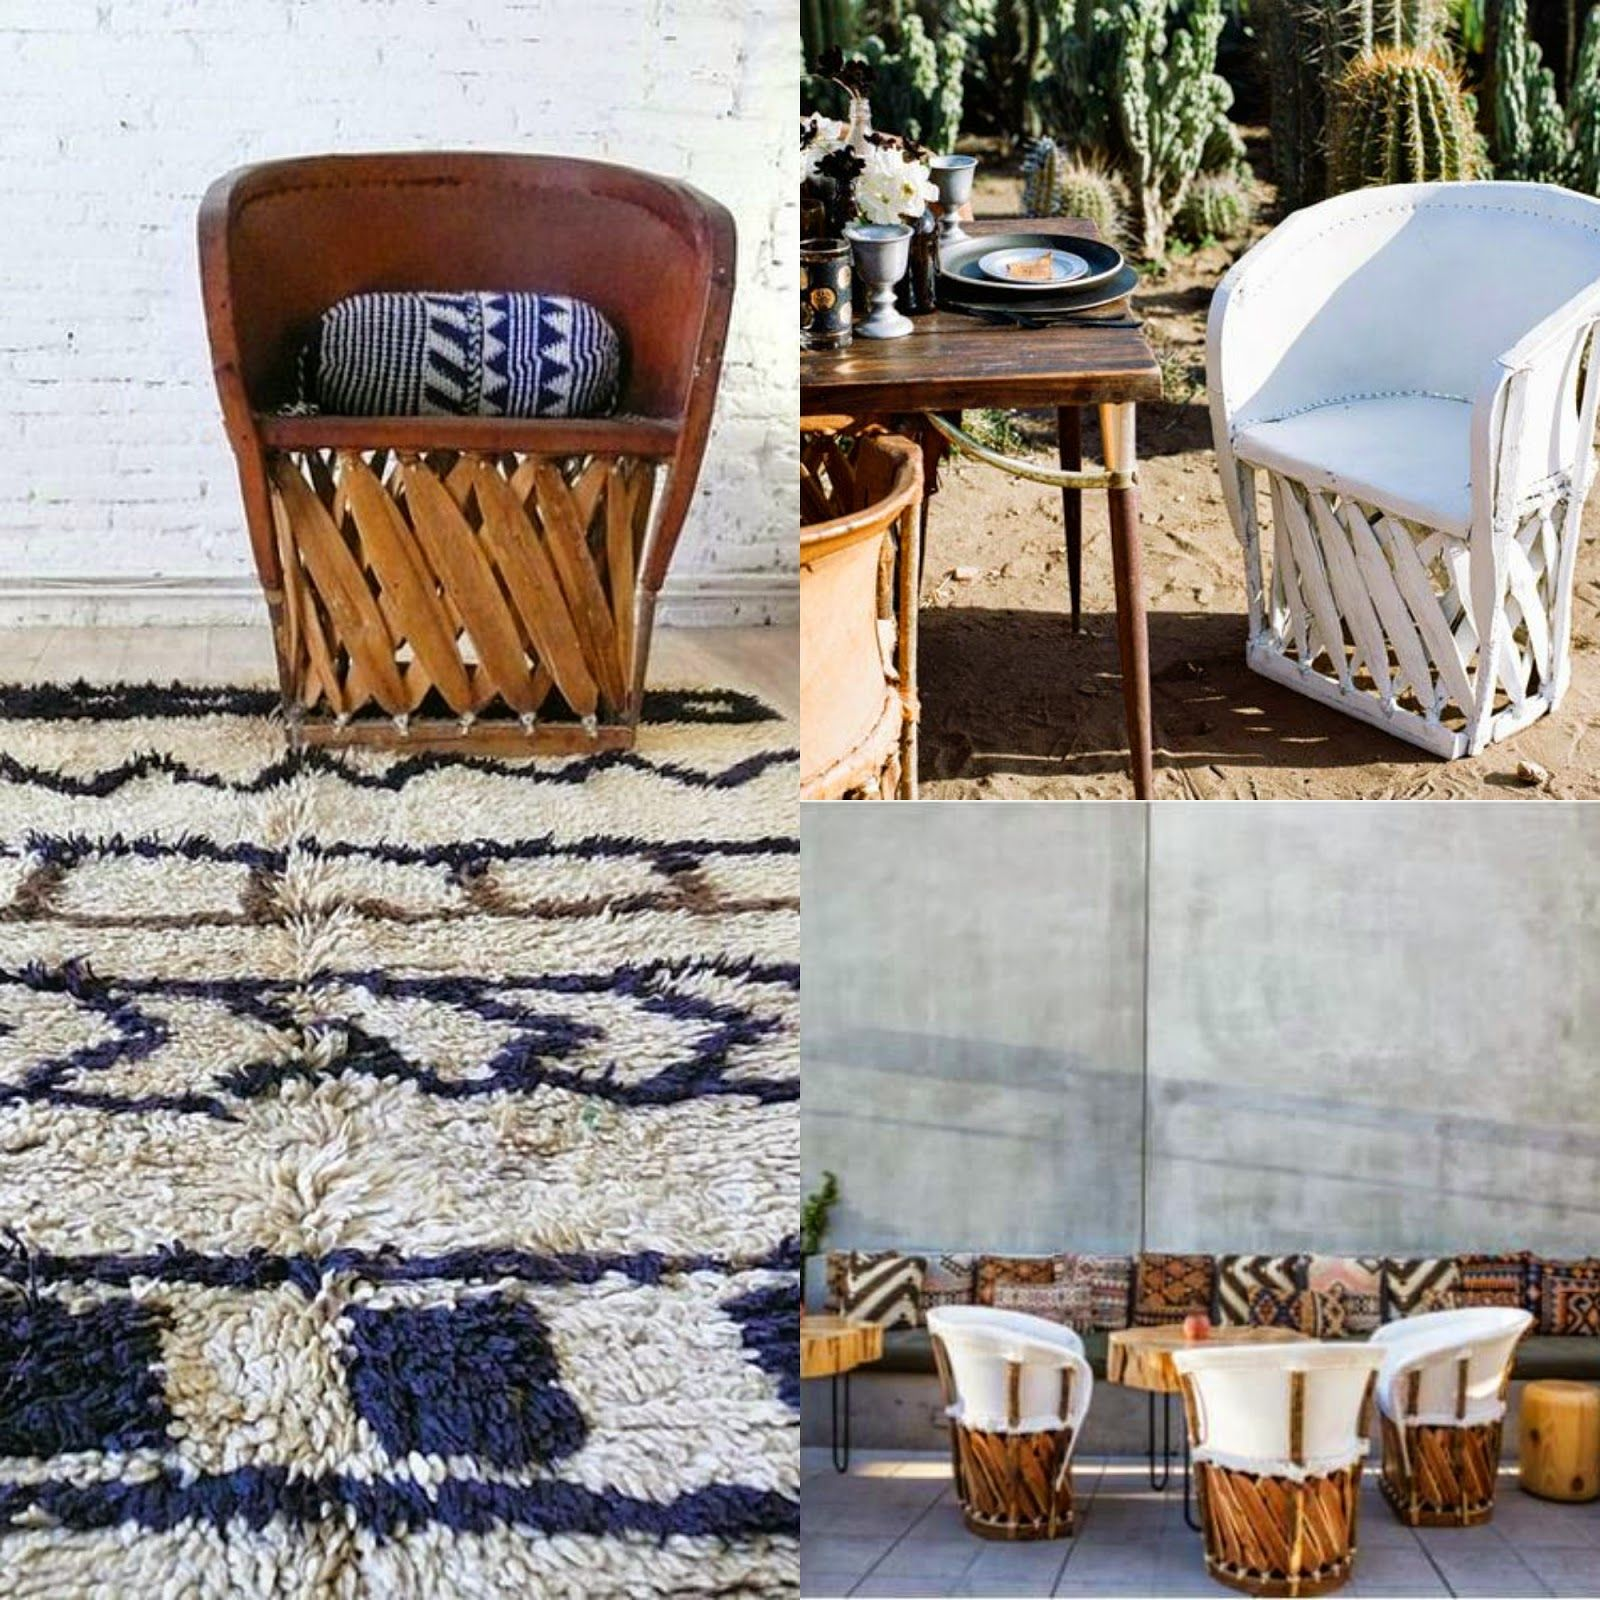 Outdoor Kitchen Accessories Sale: Trend Spotting - The Equipale Chair